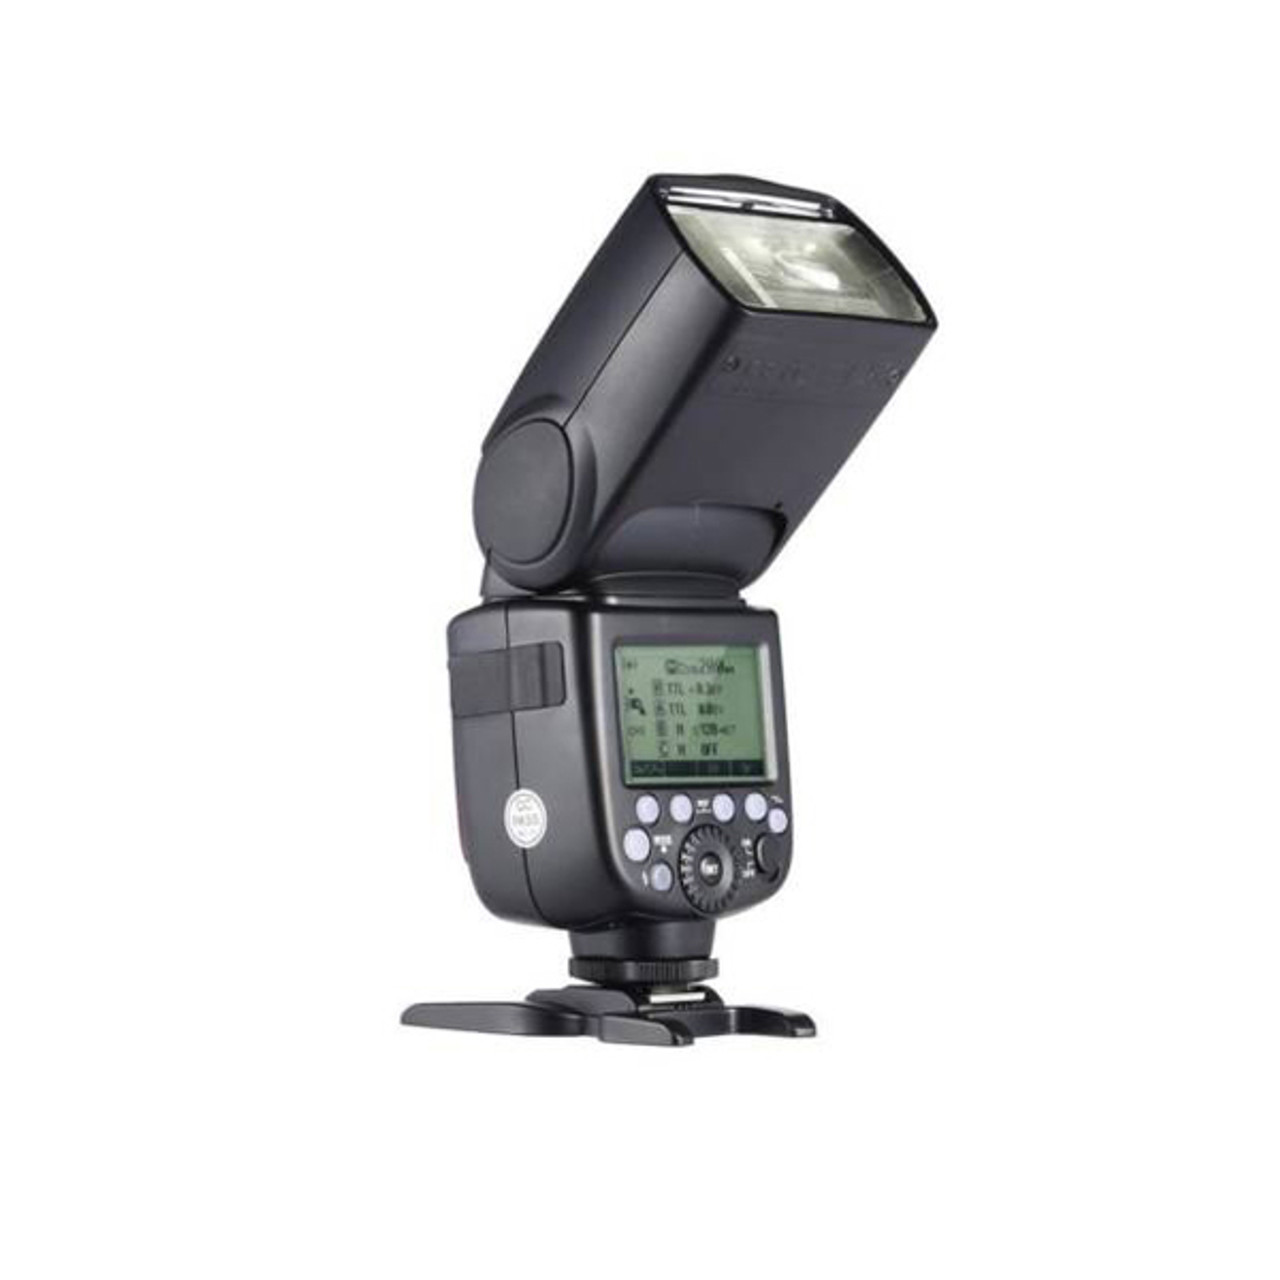 Godox V860II Flash for Nikon